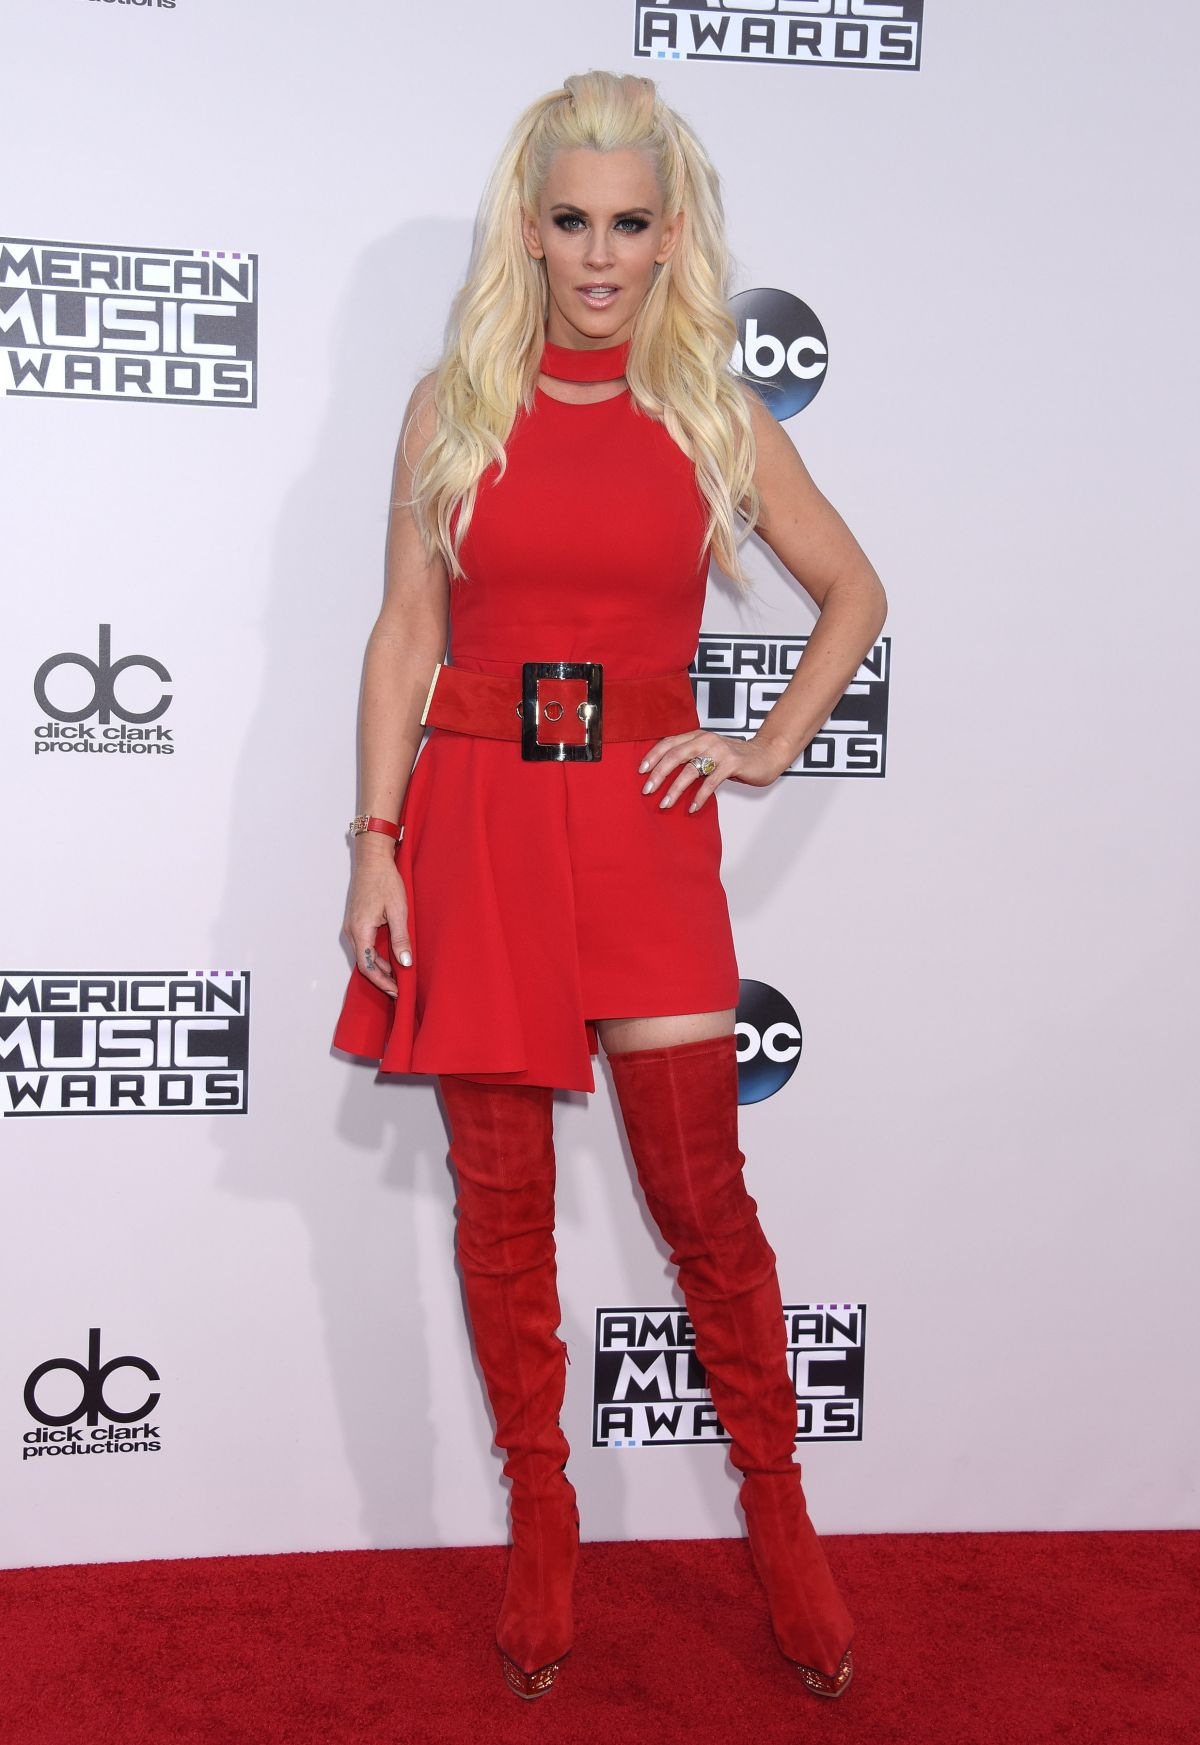 JENNY MCCARTHY at 2015 American Music Awards in Los Angeles 11/22/2015